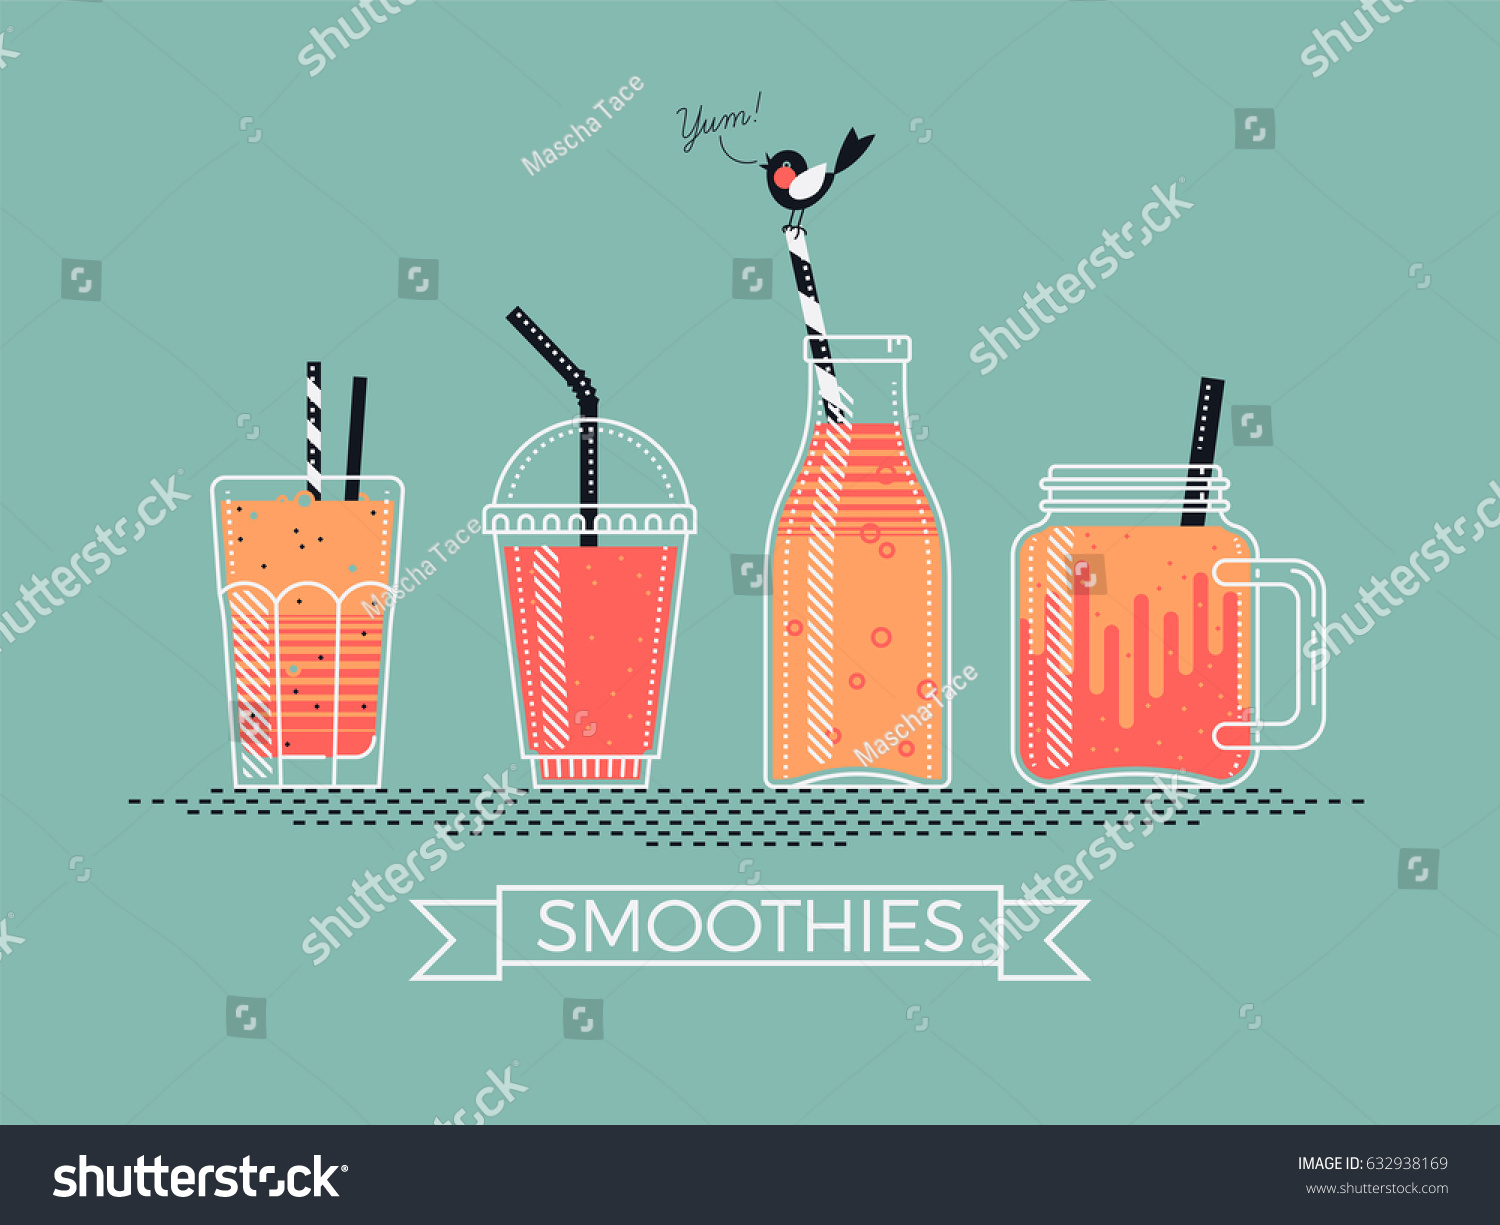 Glass juice cups design - Cool Detailed Vector Illustration On Various Filled Smoothie Jars Cups Bottles And Glasses With